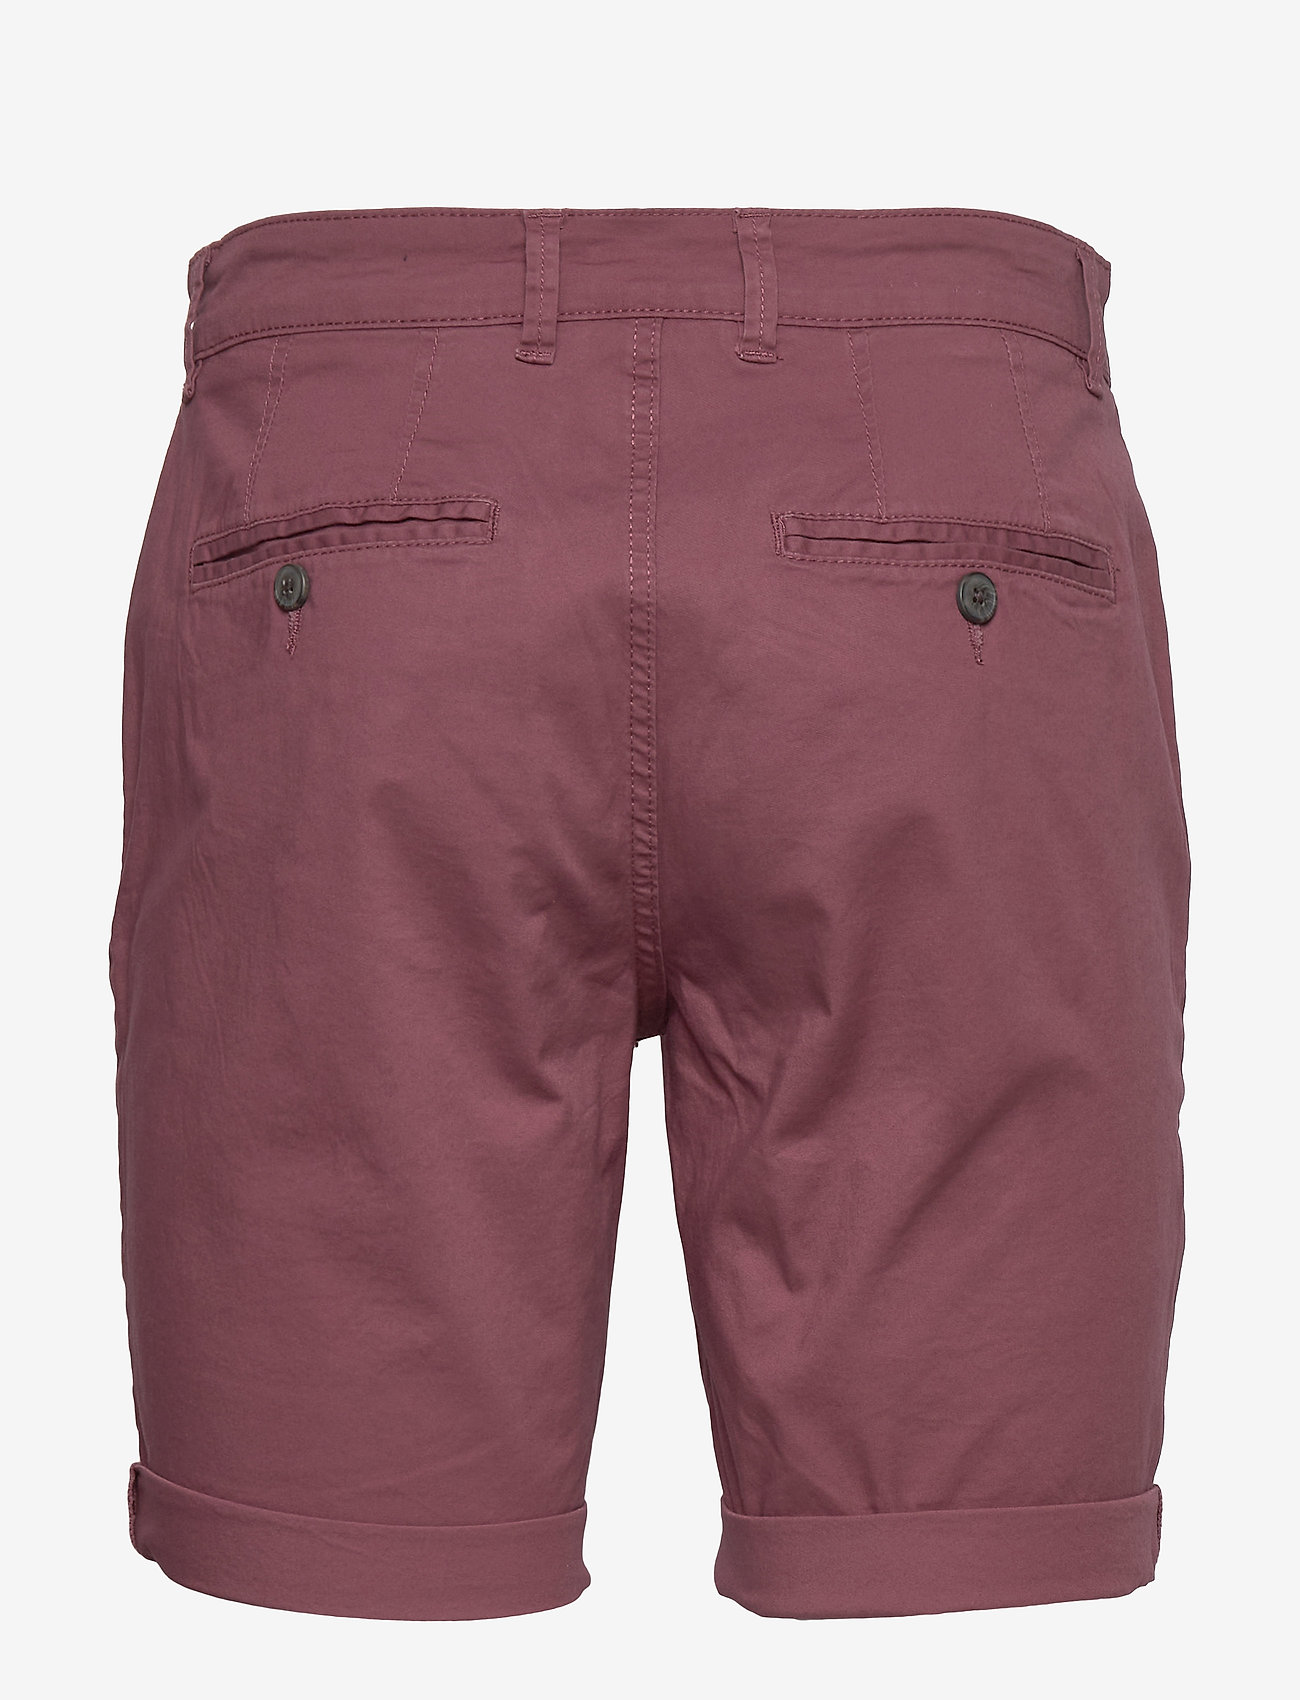 Selected Homme - SLHSTRAIGHT-PARIS SHORTS W NOOS - chino's shorts - wild ginger - 1